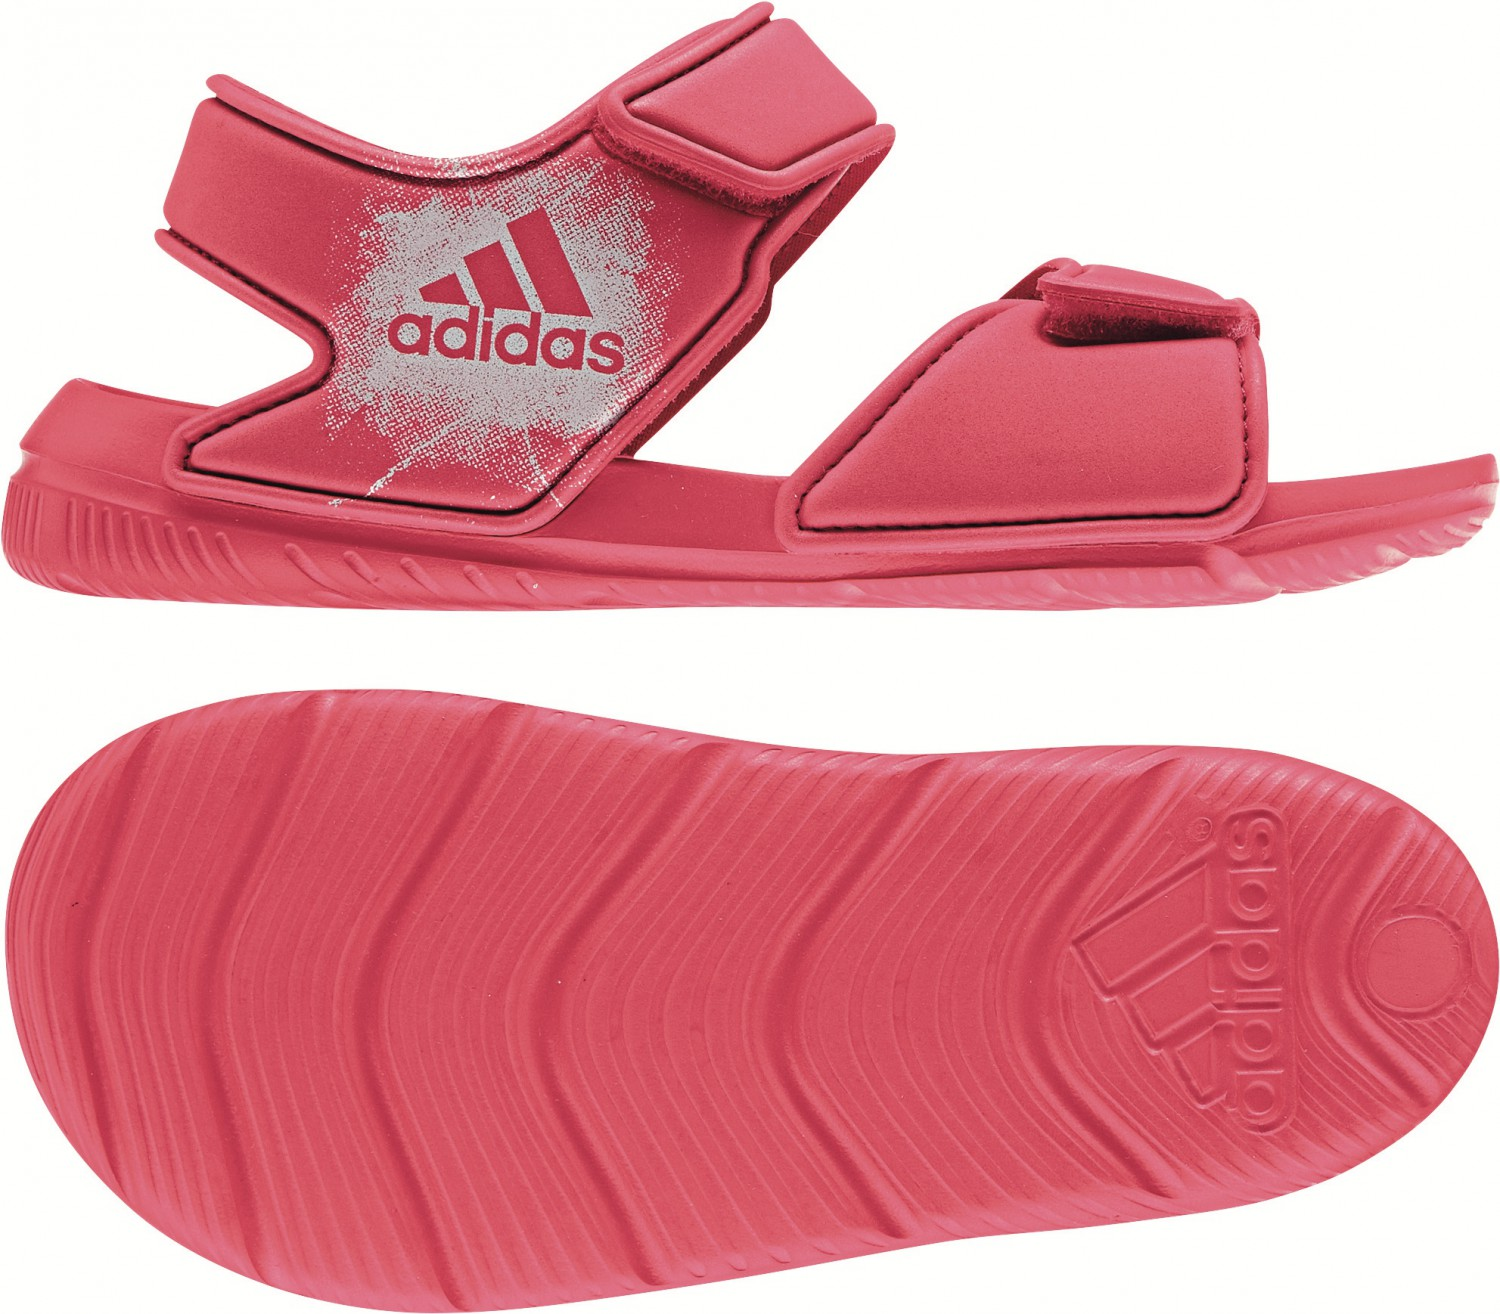 e9f1a2fc6c19 adidas kids water sandal AltaSwim C water shoes BA7849 bathing sandal pink